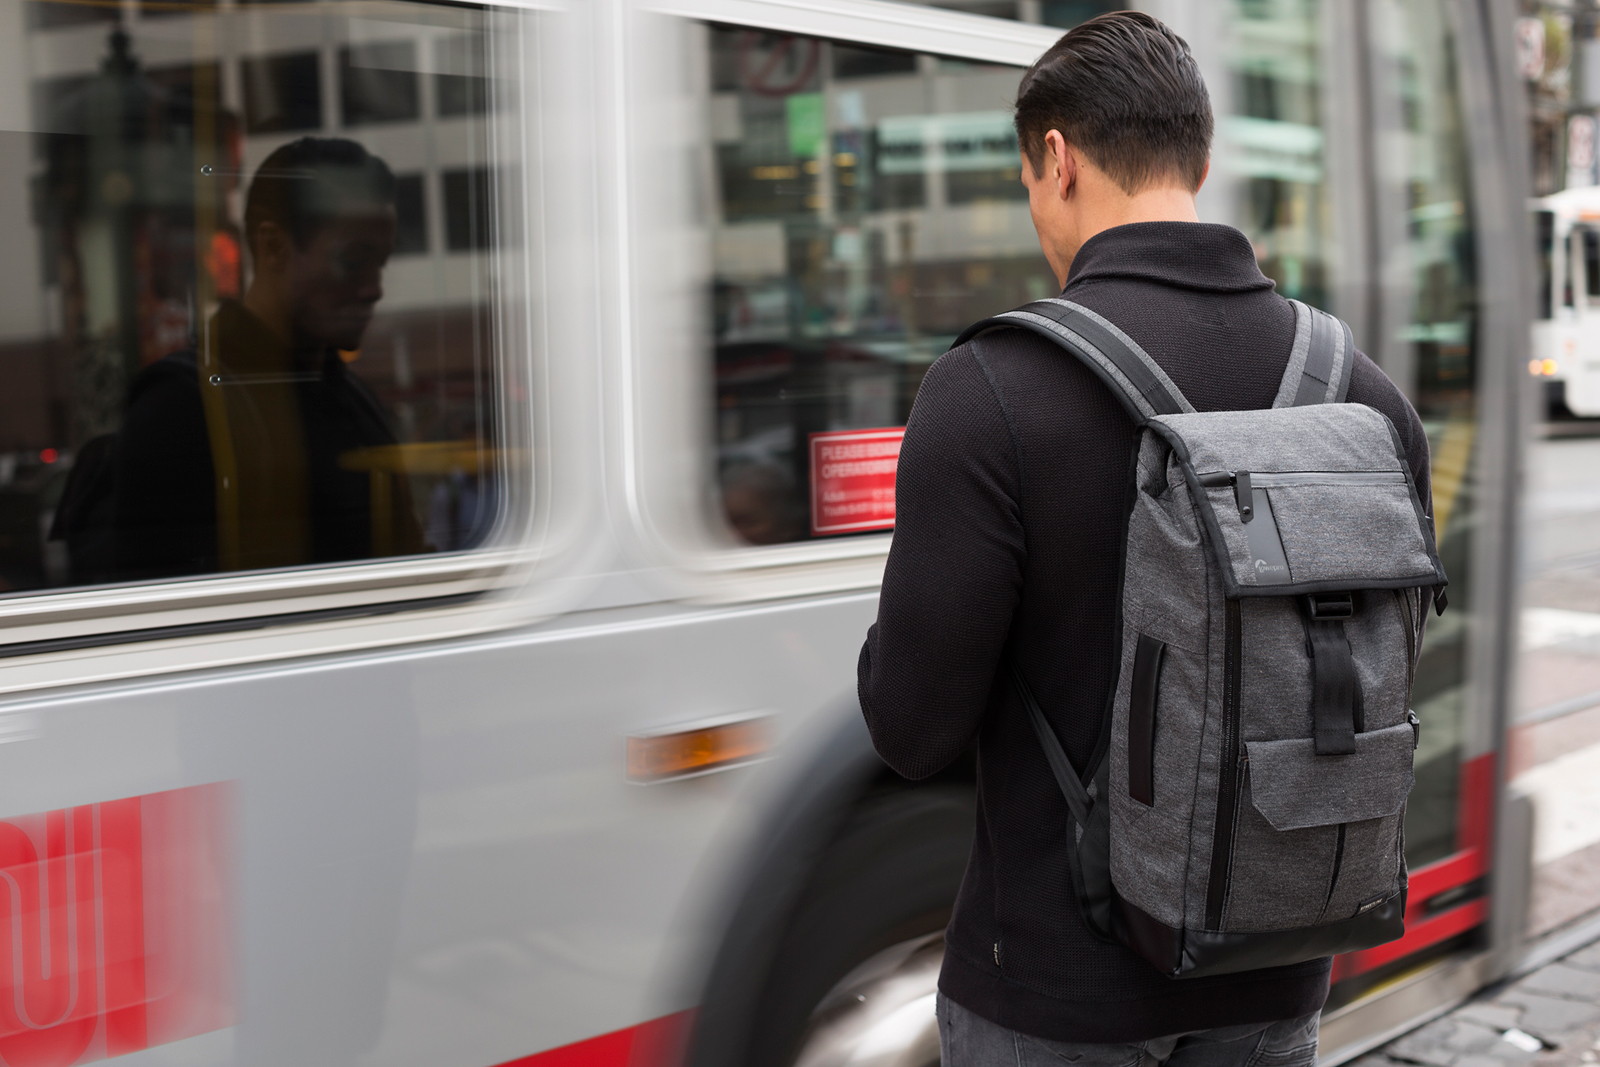 StreetLine: Commuter Bags for Daily Travel